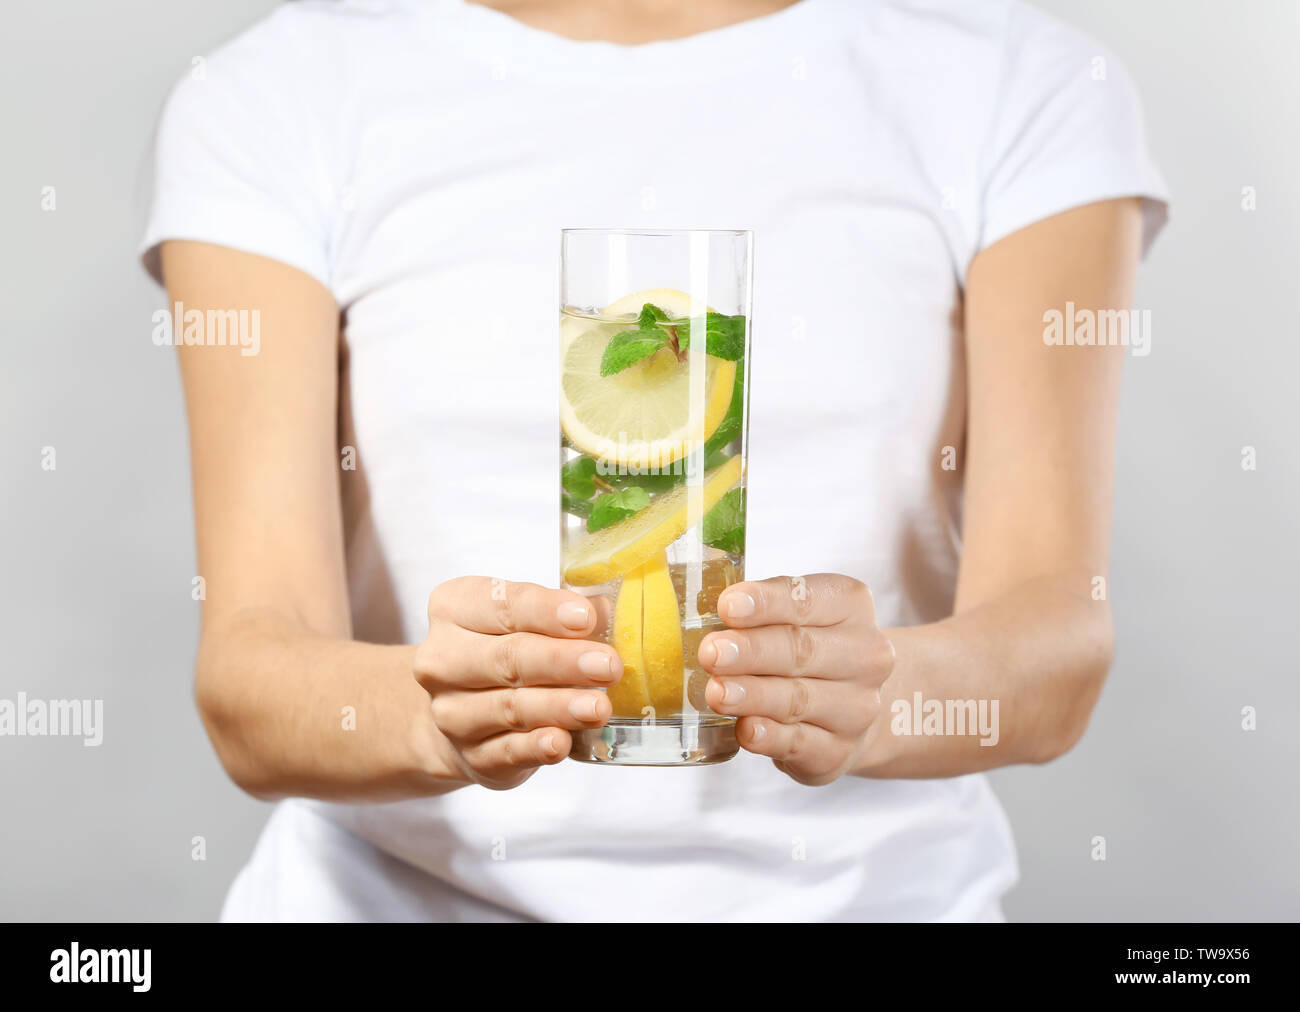 Young woman with glass of lemonade on grey background, closeup - Stock Image